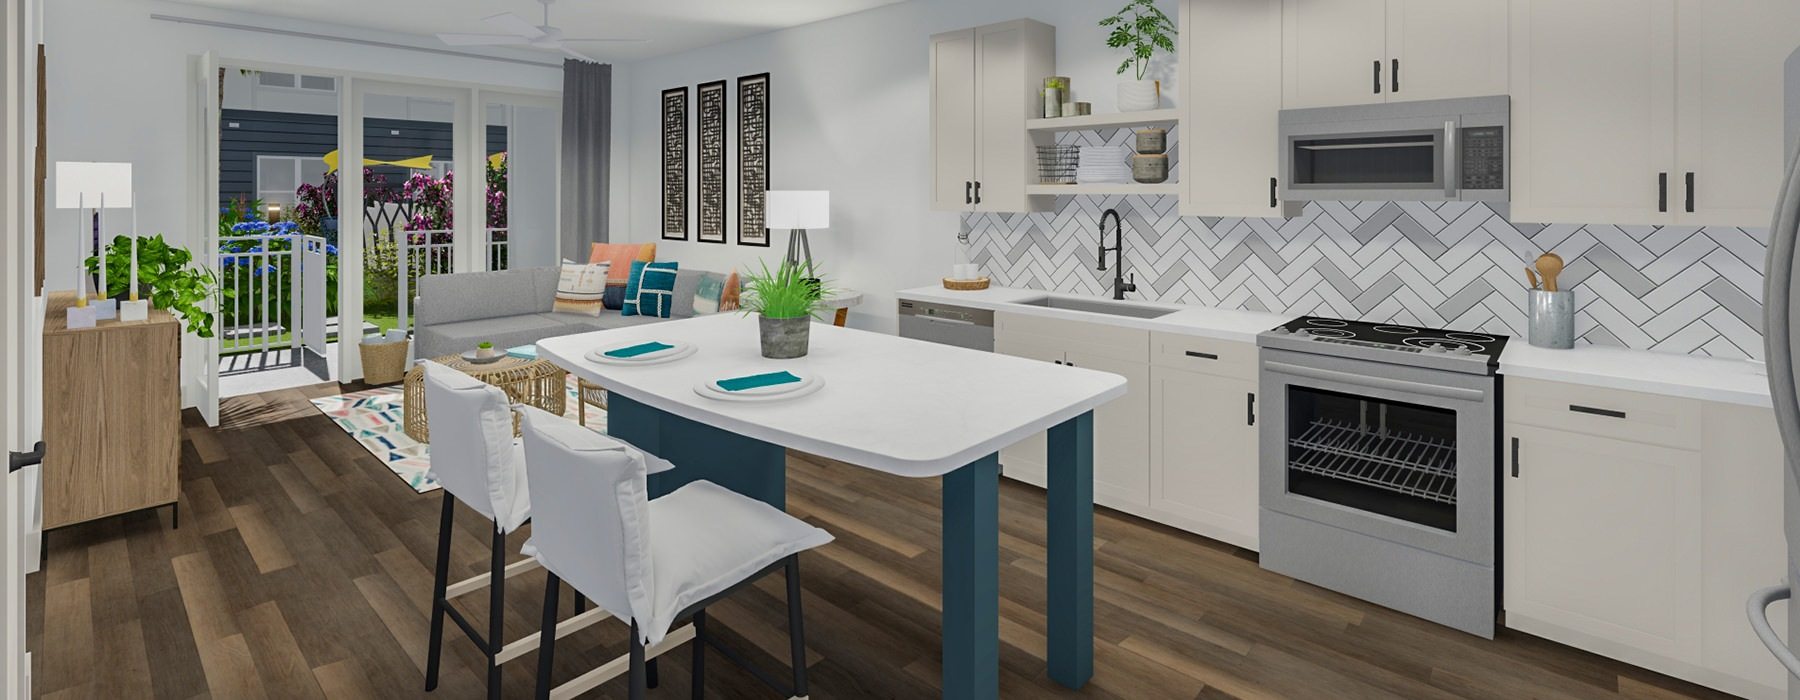 Available Studio 1 2 Bedroom Apartments In Wilmington Nc 17 Social